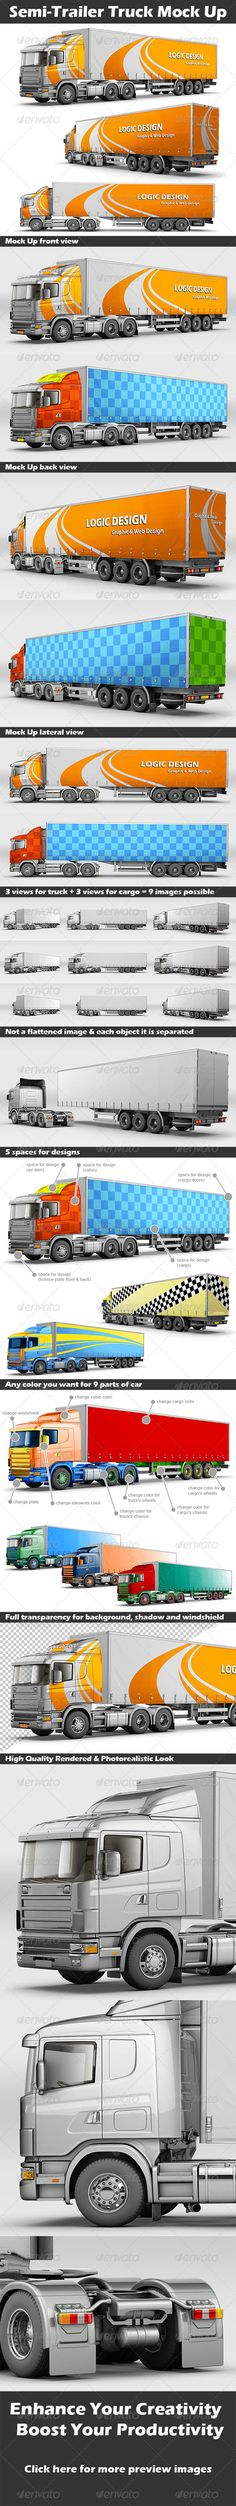 Buy Semi-Trailer Truck Mock Up by Logic_Design on GraphicRiver. Semi-Trailer Truck Mock Up Description A professional Semi-Trailer Truck Mock Up. Semi Trailer Truck, Logic Design, Road Train, Light Reflection, Nature Pictures, Car Parts, 3 D, The Incredibles, Trucks